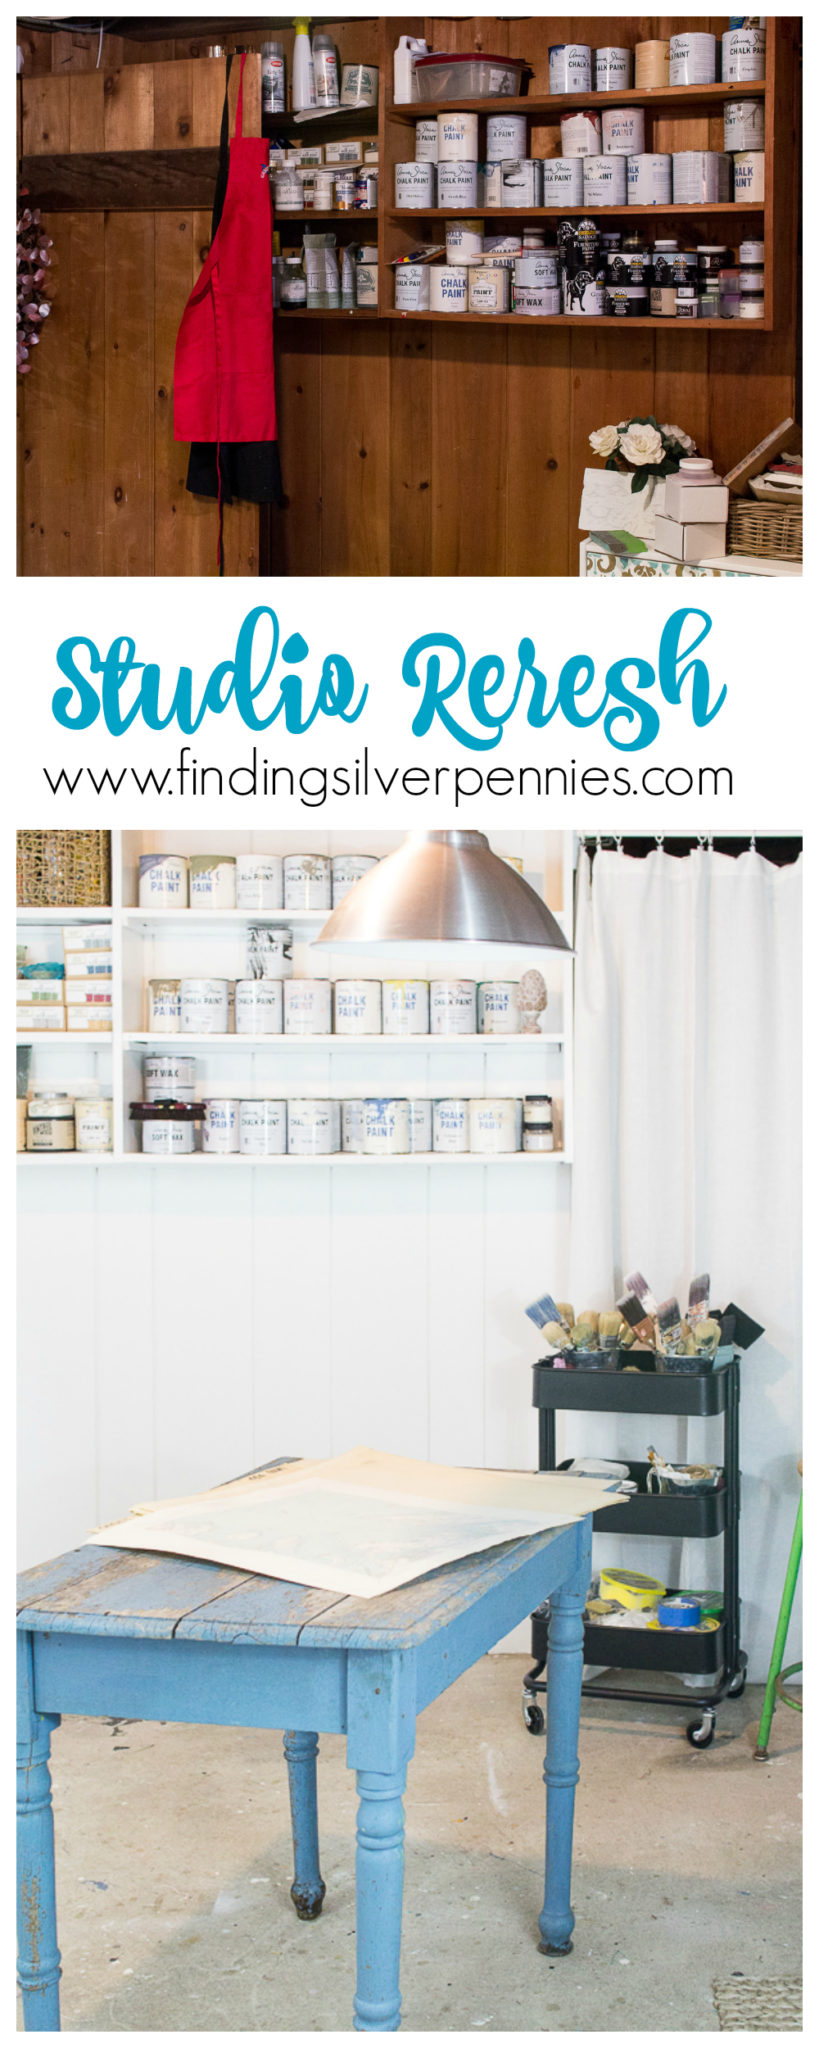 Studio Refresh - Favorite DIYs - Finding Silver Pennies